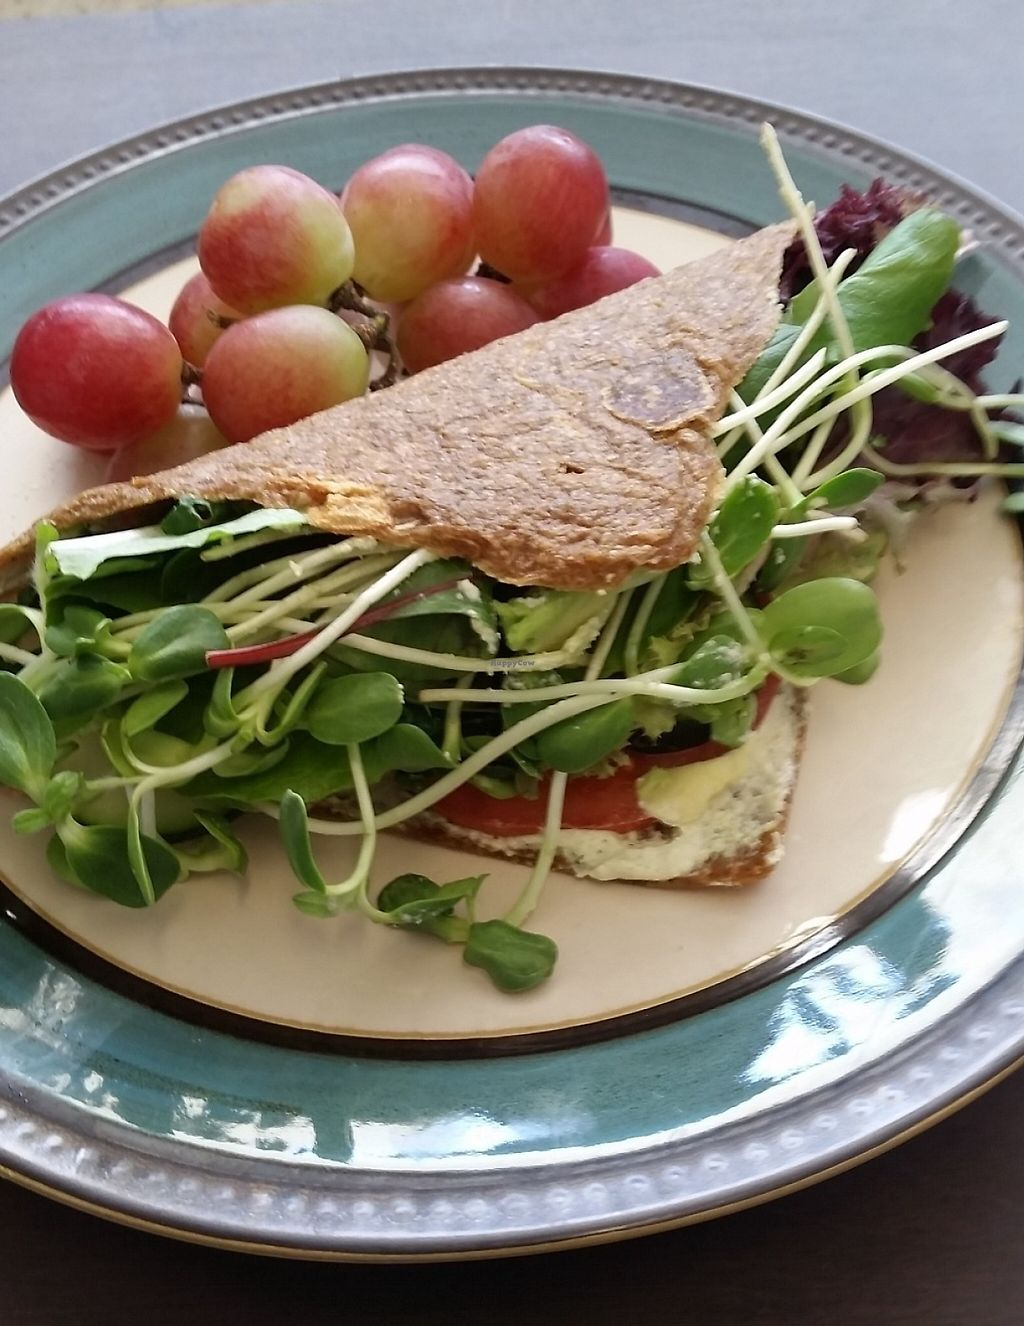 "Photo of Old Earth Pure Organic Food  by <a href=""/members/profile/BSveg"">BSveg</a> <br/>Mouth watering raw vegan organic veggie wrap. Everything made in house! Cashew zucchini hummus, guacamole, tomato, micro greens, cucumber and field greens! <br/> July 14, 2016  - <a href='/contact/abuse/image/69712/197569'>Report</a>"